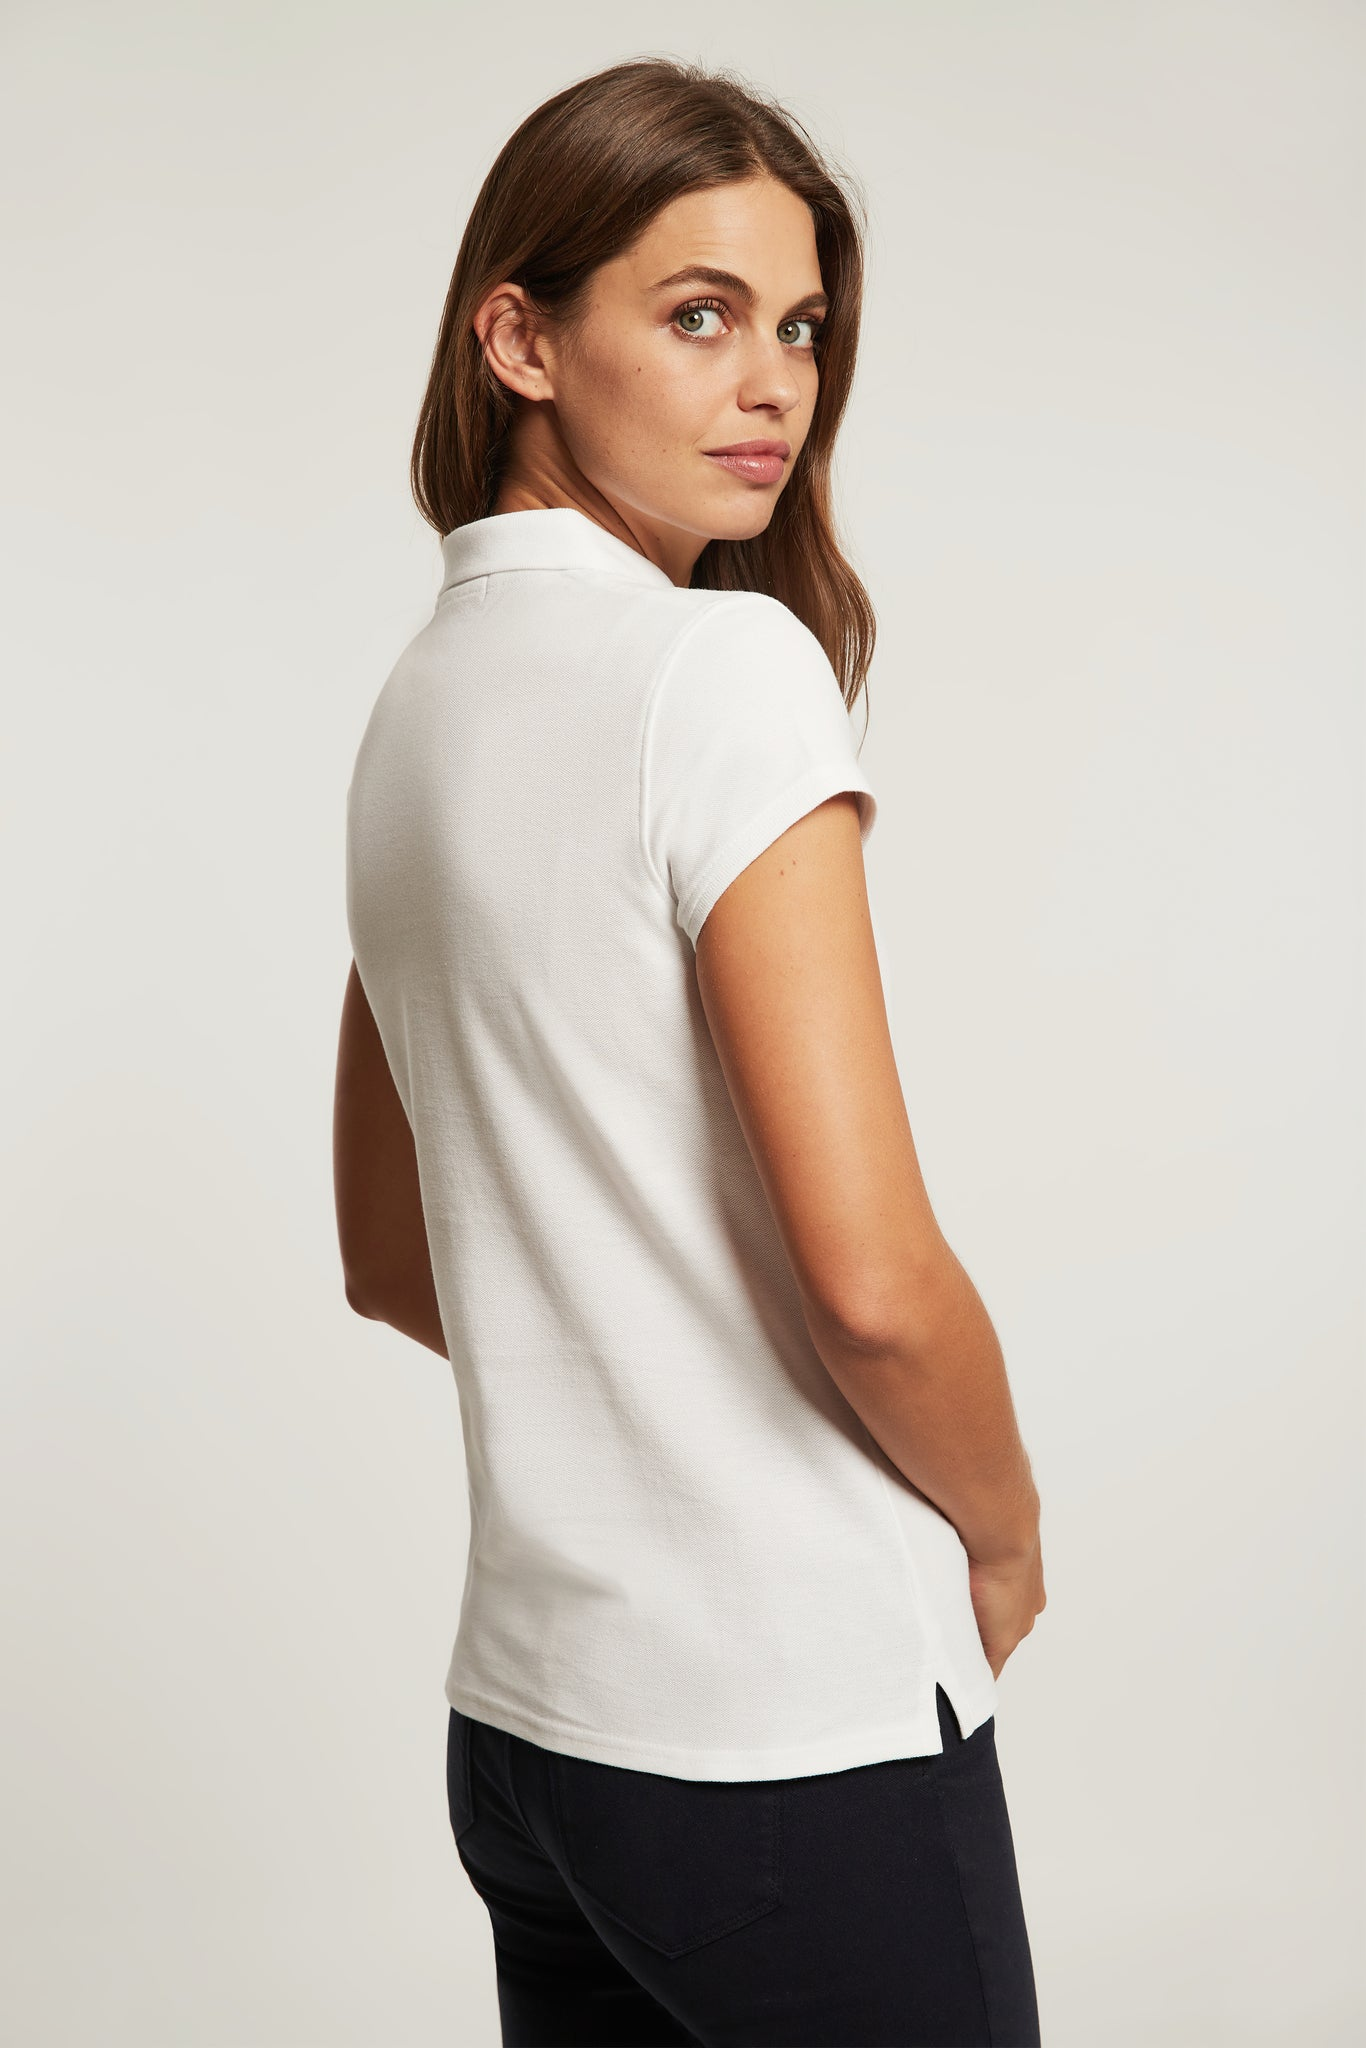 White polo shirt with embroidery